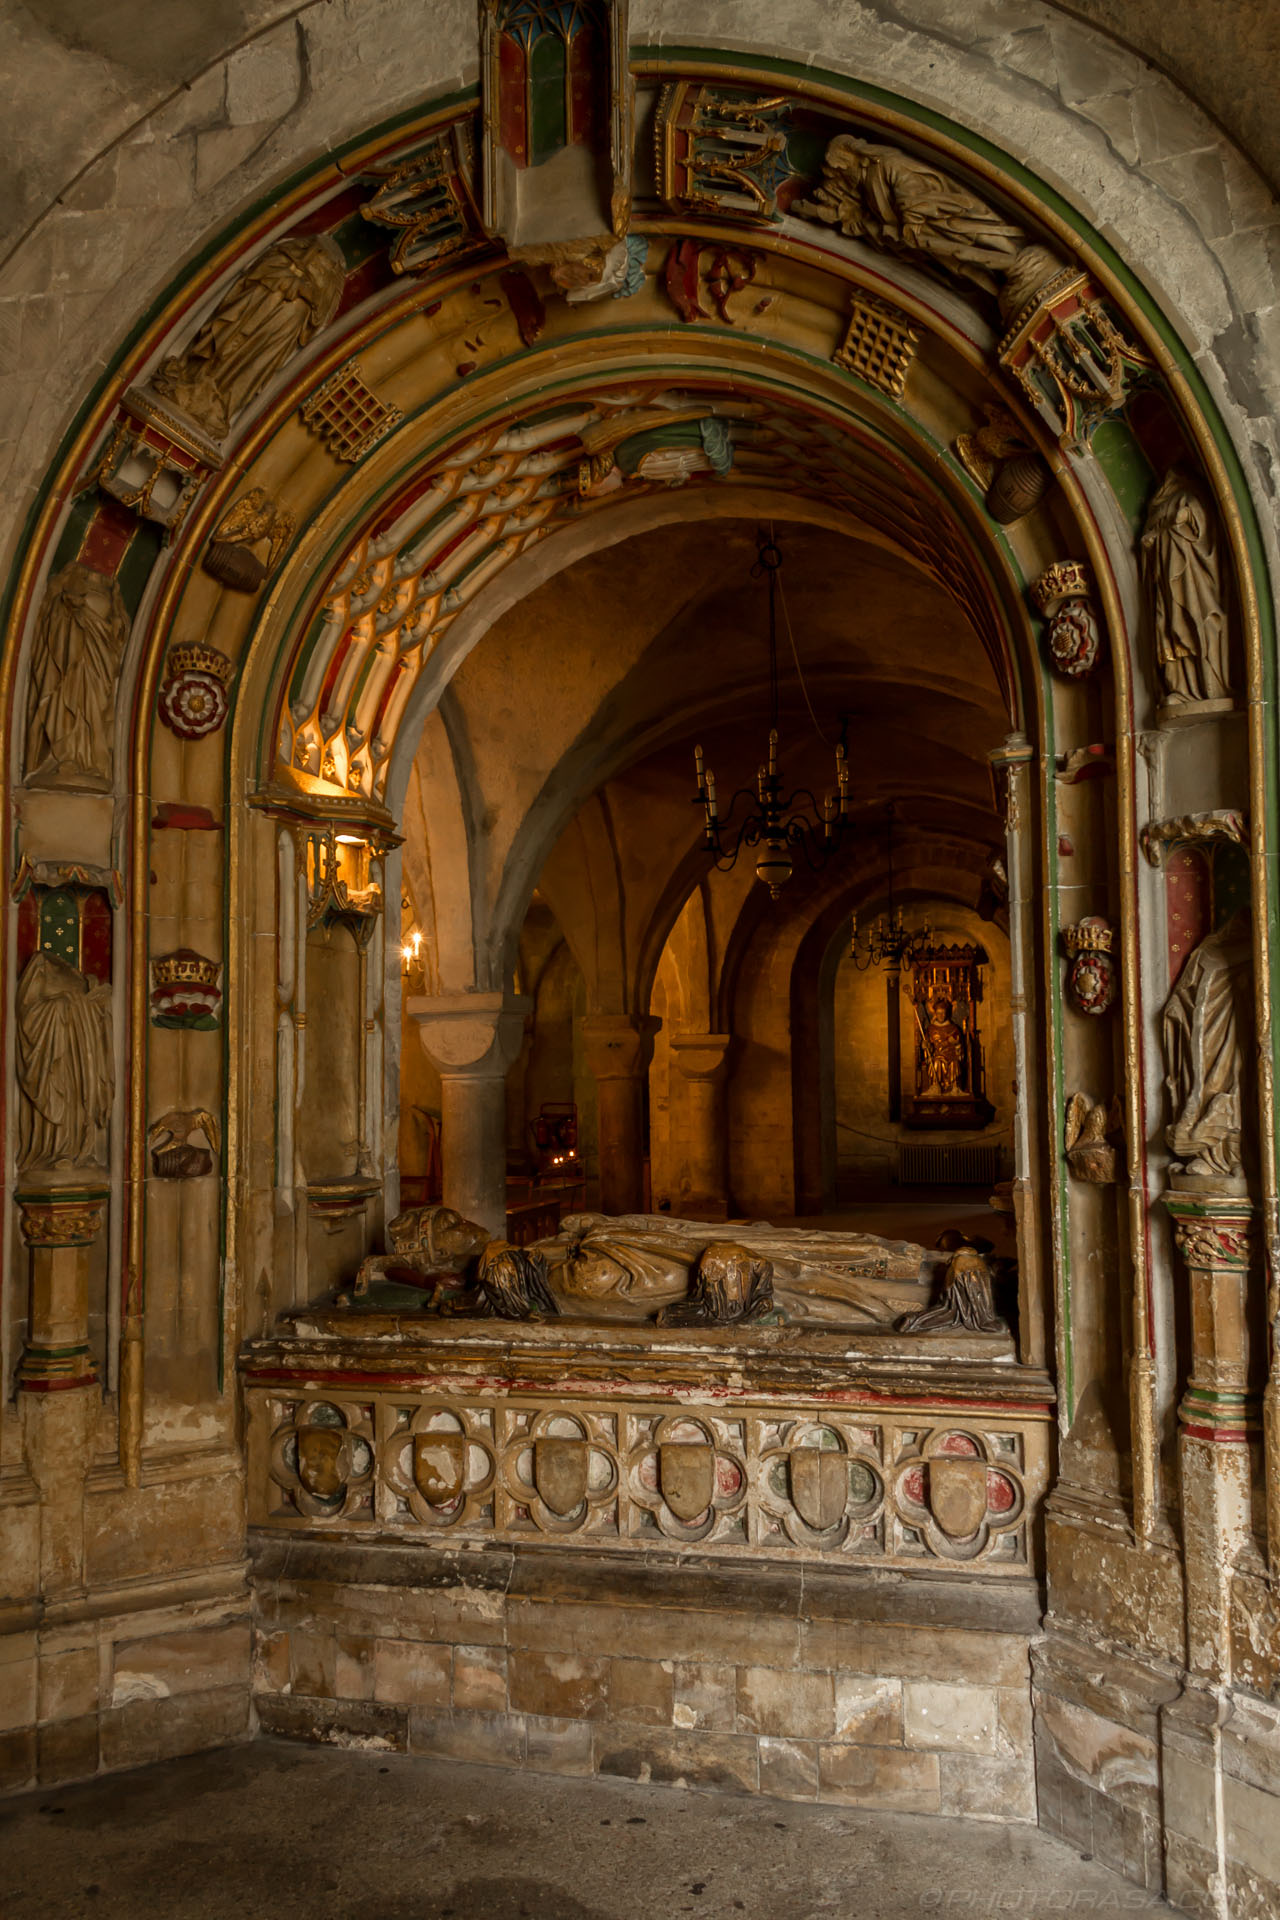 http://photorasa.com/canterbury-cathedral/crypt-tomb-of-archbishop-john-morton/